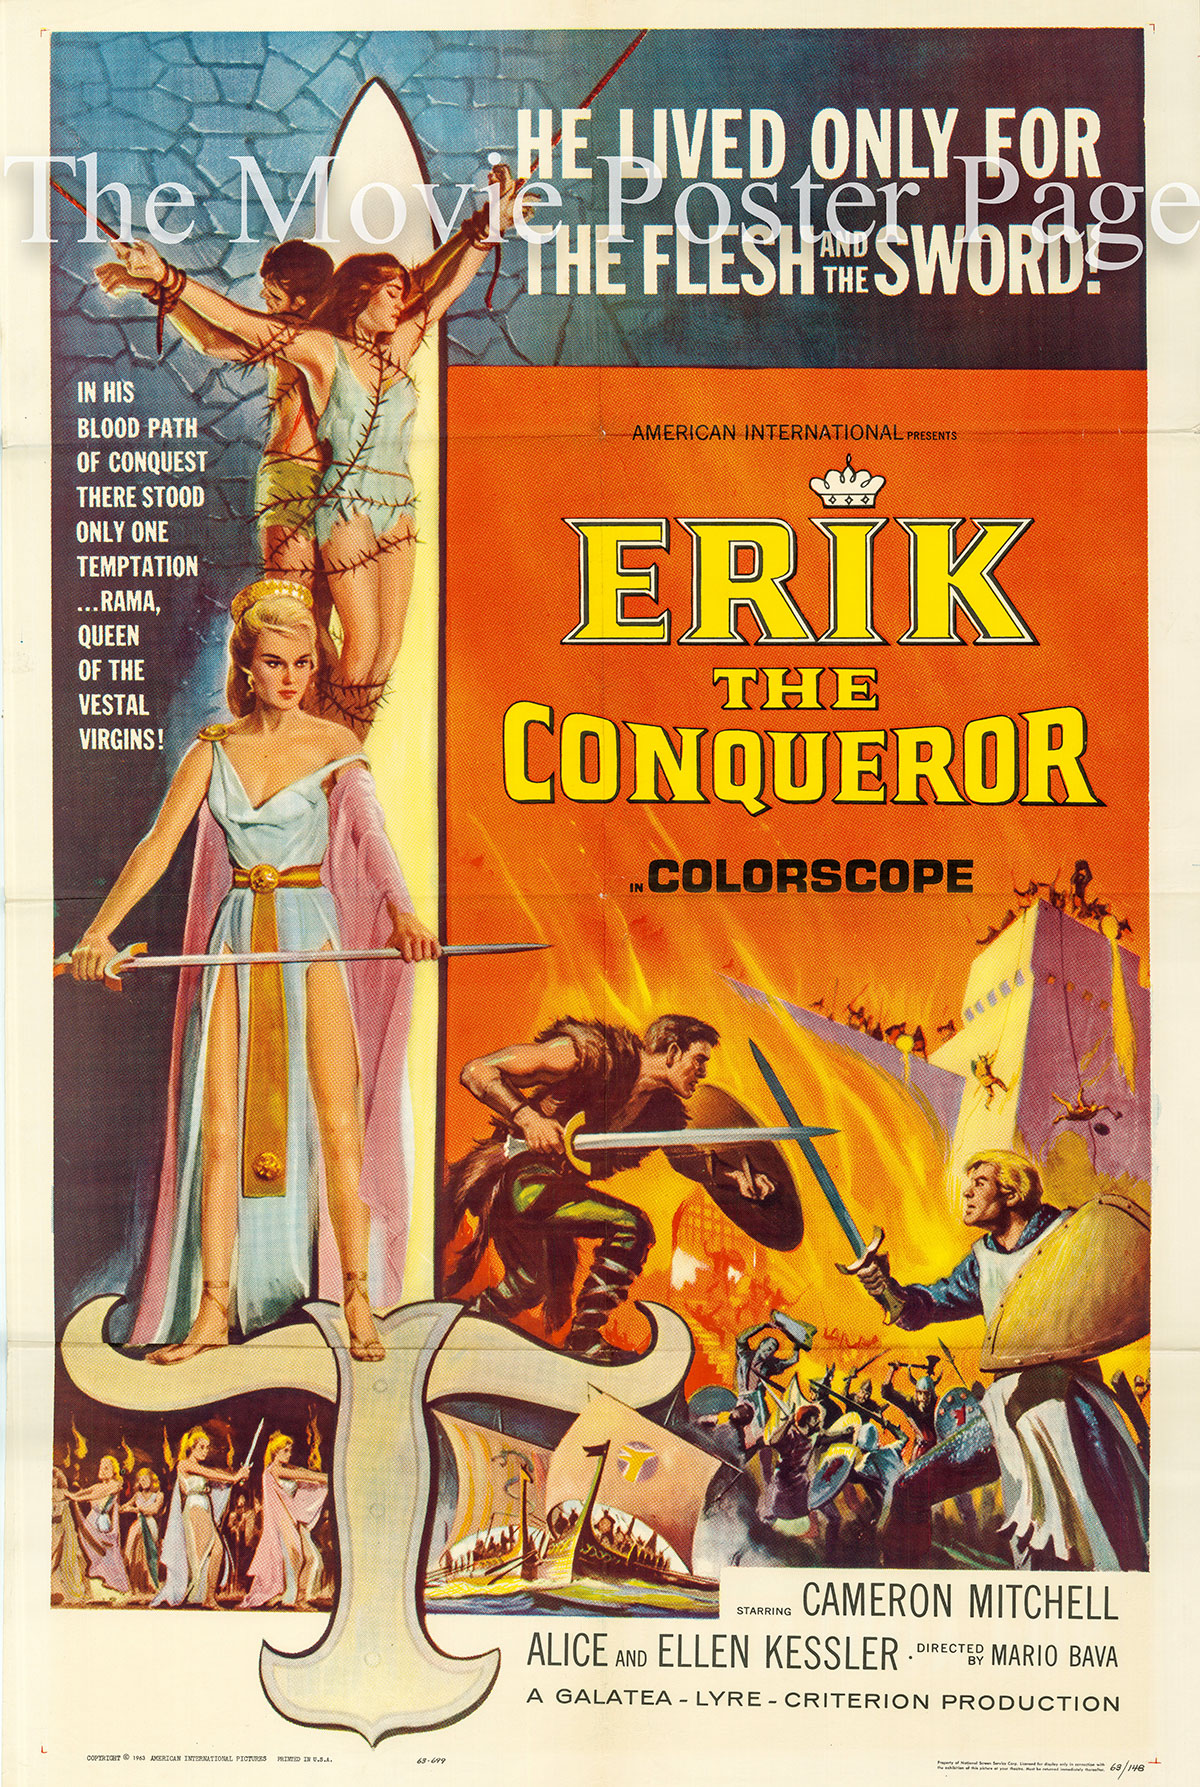 Pictured is a US one-sheet poster for the 1963 Mario Bava film Erik the Conqueror starrijng Cameron Mitchell as Eron.